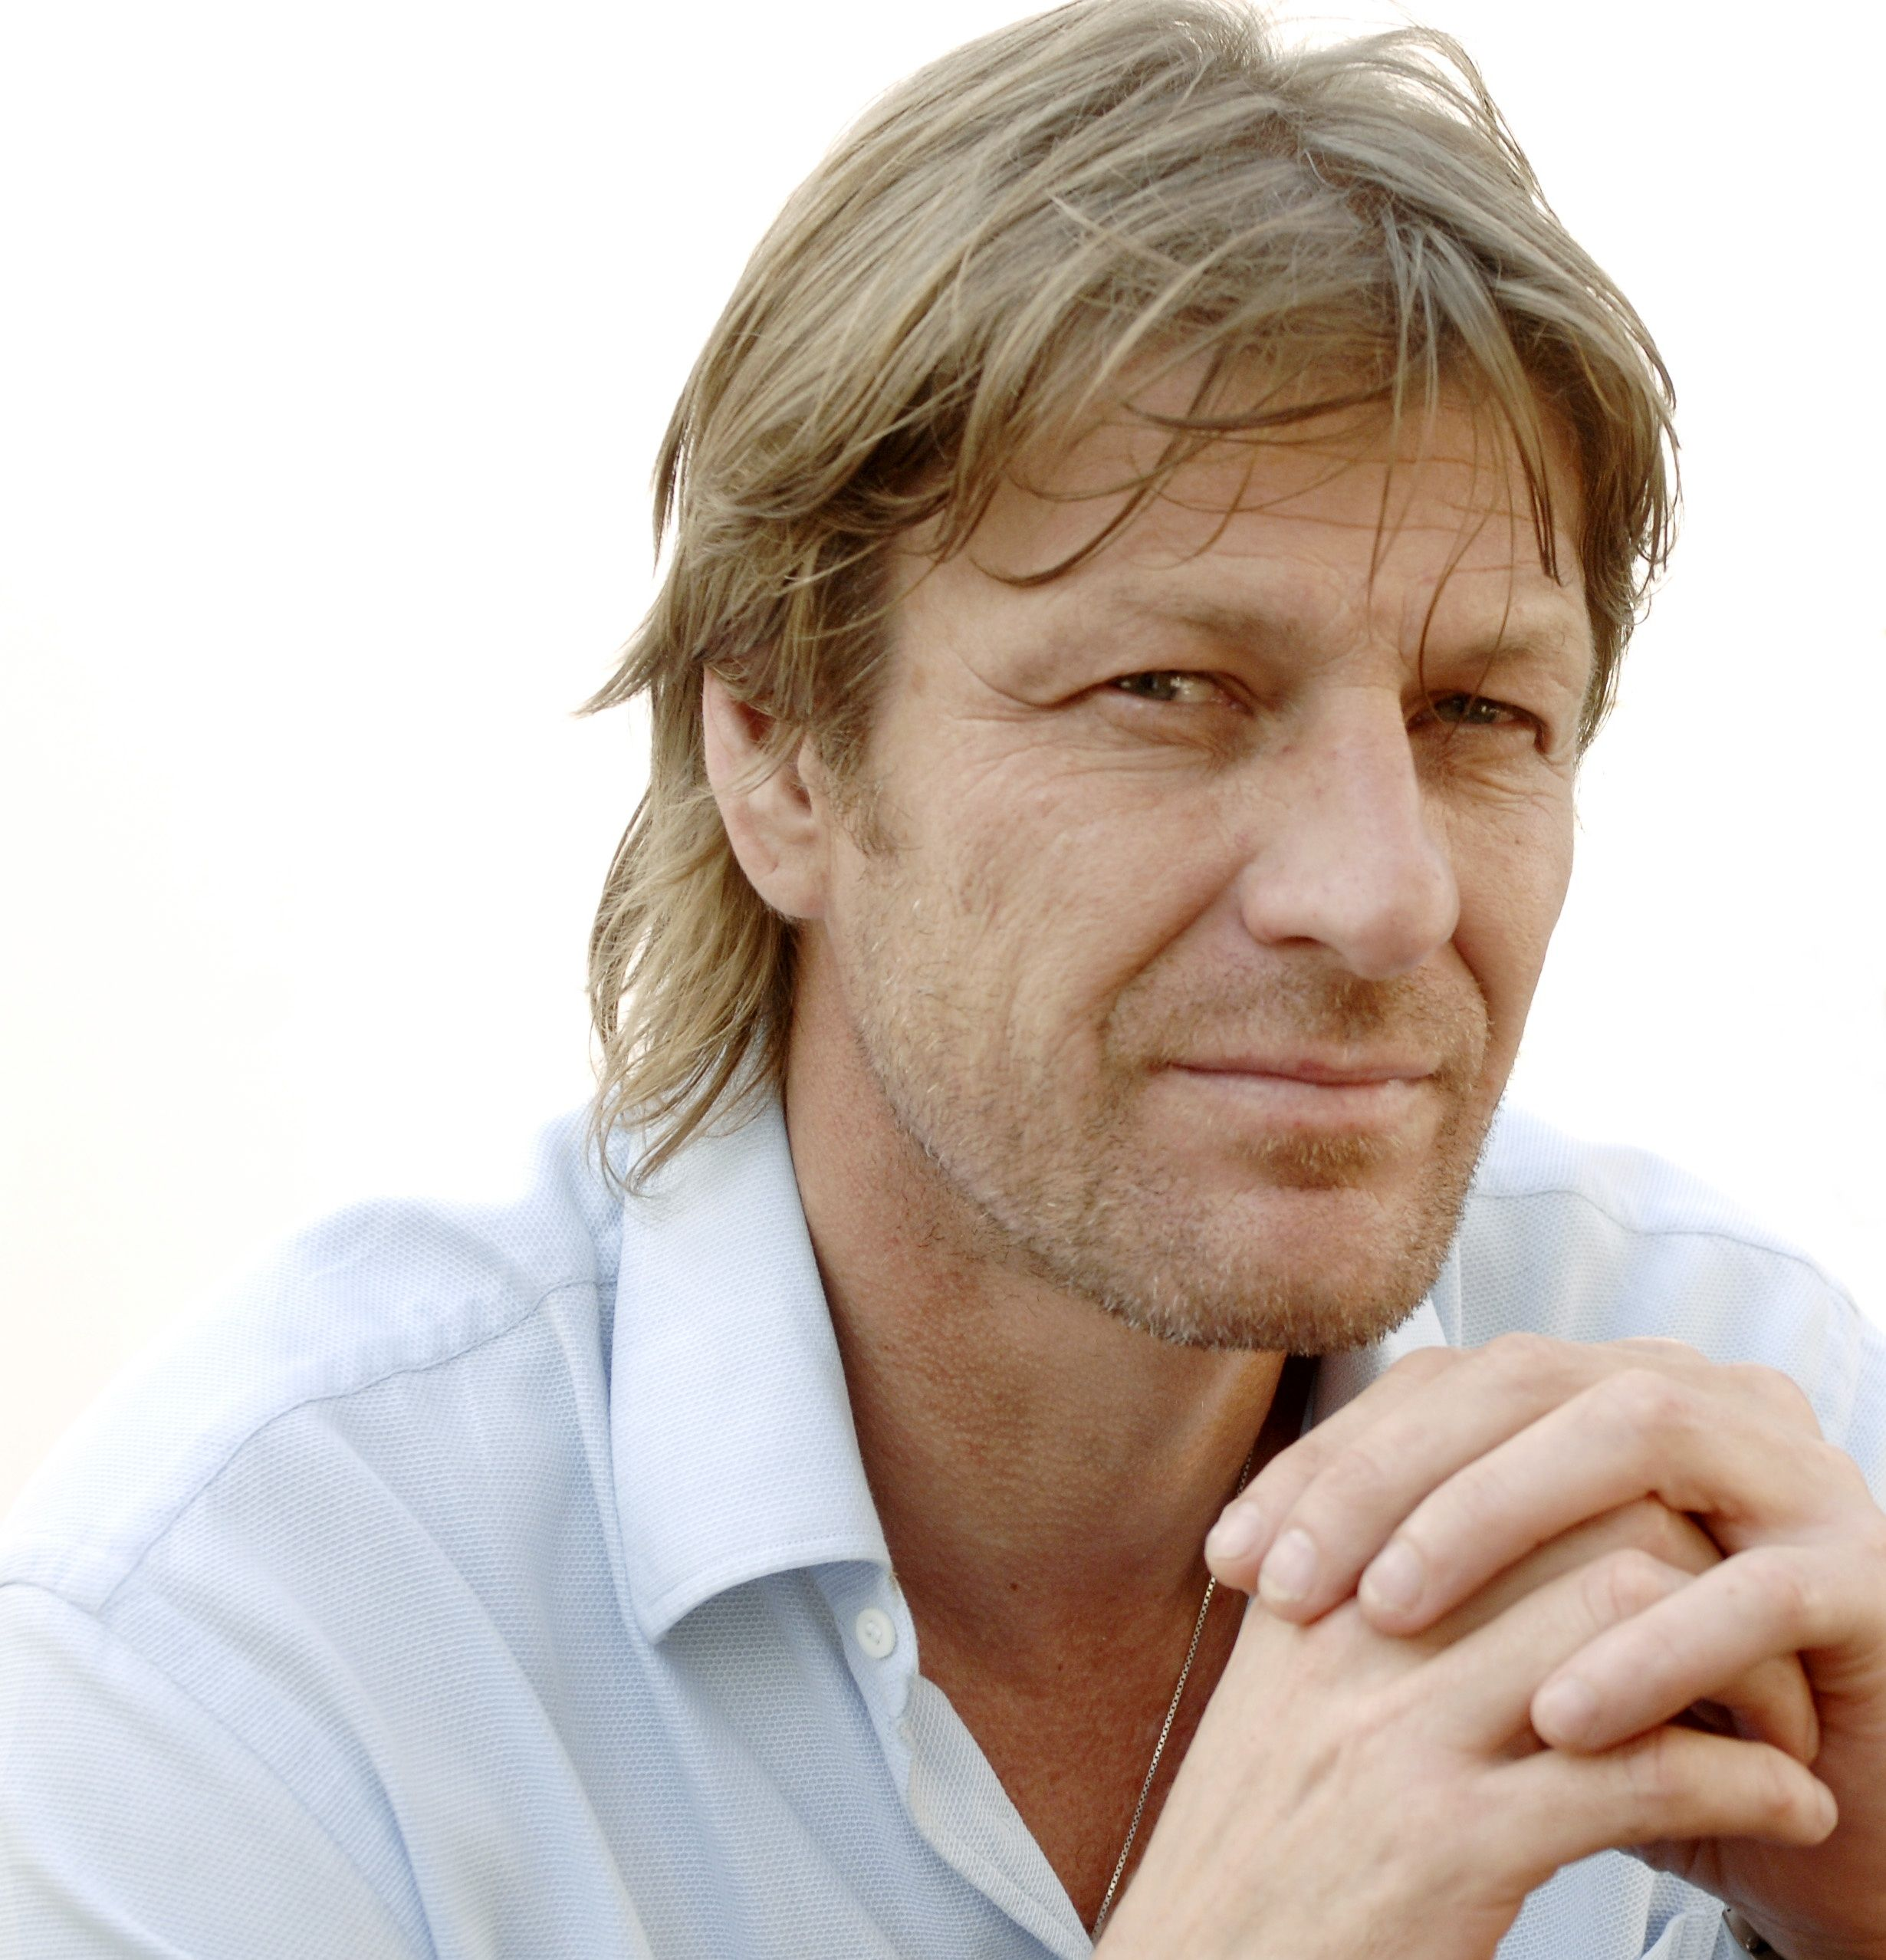 sean bean heightsean bean young, sean bean instagram, sean bean news, sean bean 2017, sean bean gif, sean bean films, sean bean doom, sean bean kinopoisk, sean bean filmography, sean bean height, sean bean daughters, sean bean vk, sean bean oblivion, sean bean voice, sean bean chris hemsworth, sean bean on waterloo, sean bean rip, sean bean maktoub, sean bean net worth, sean bean movies